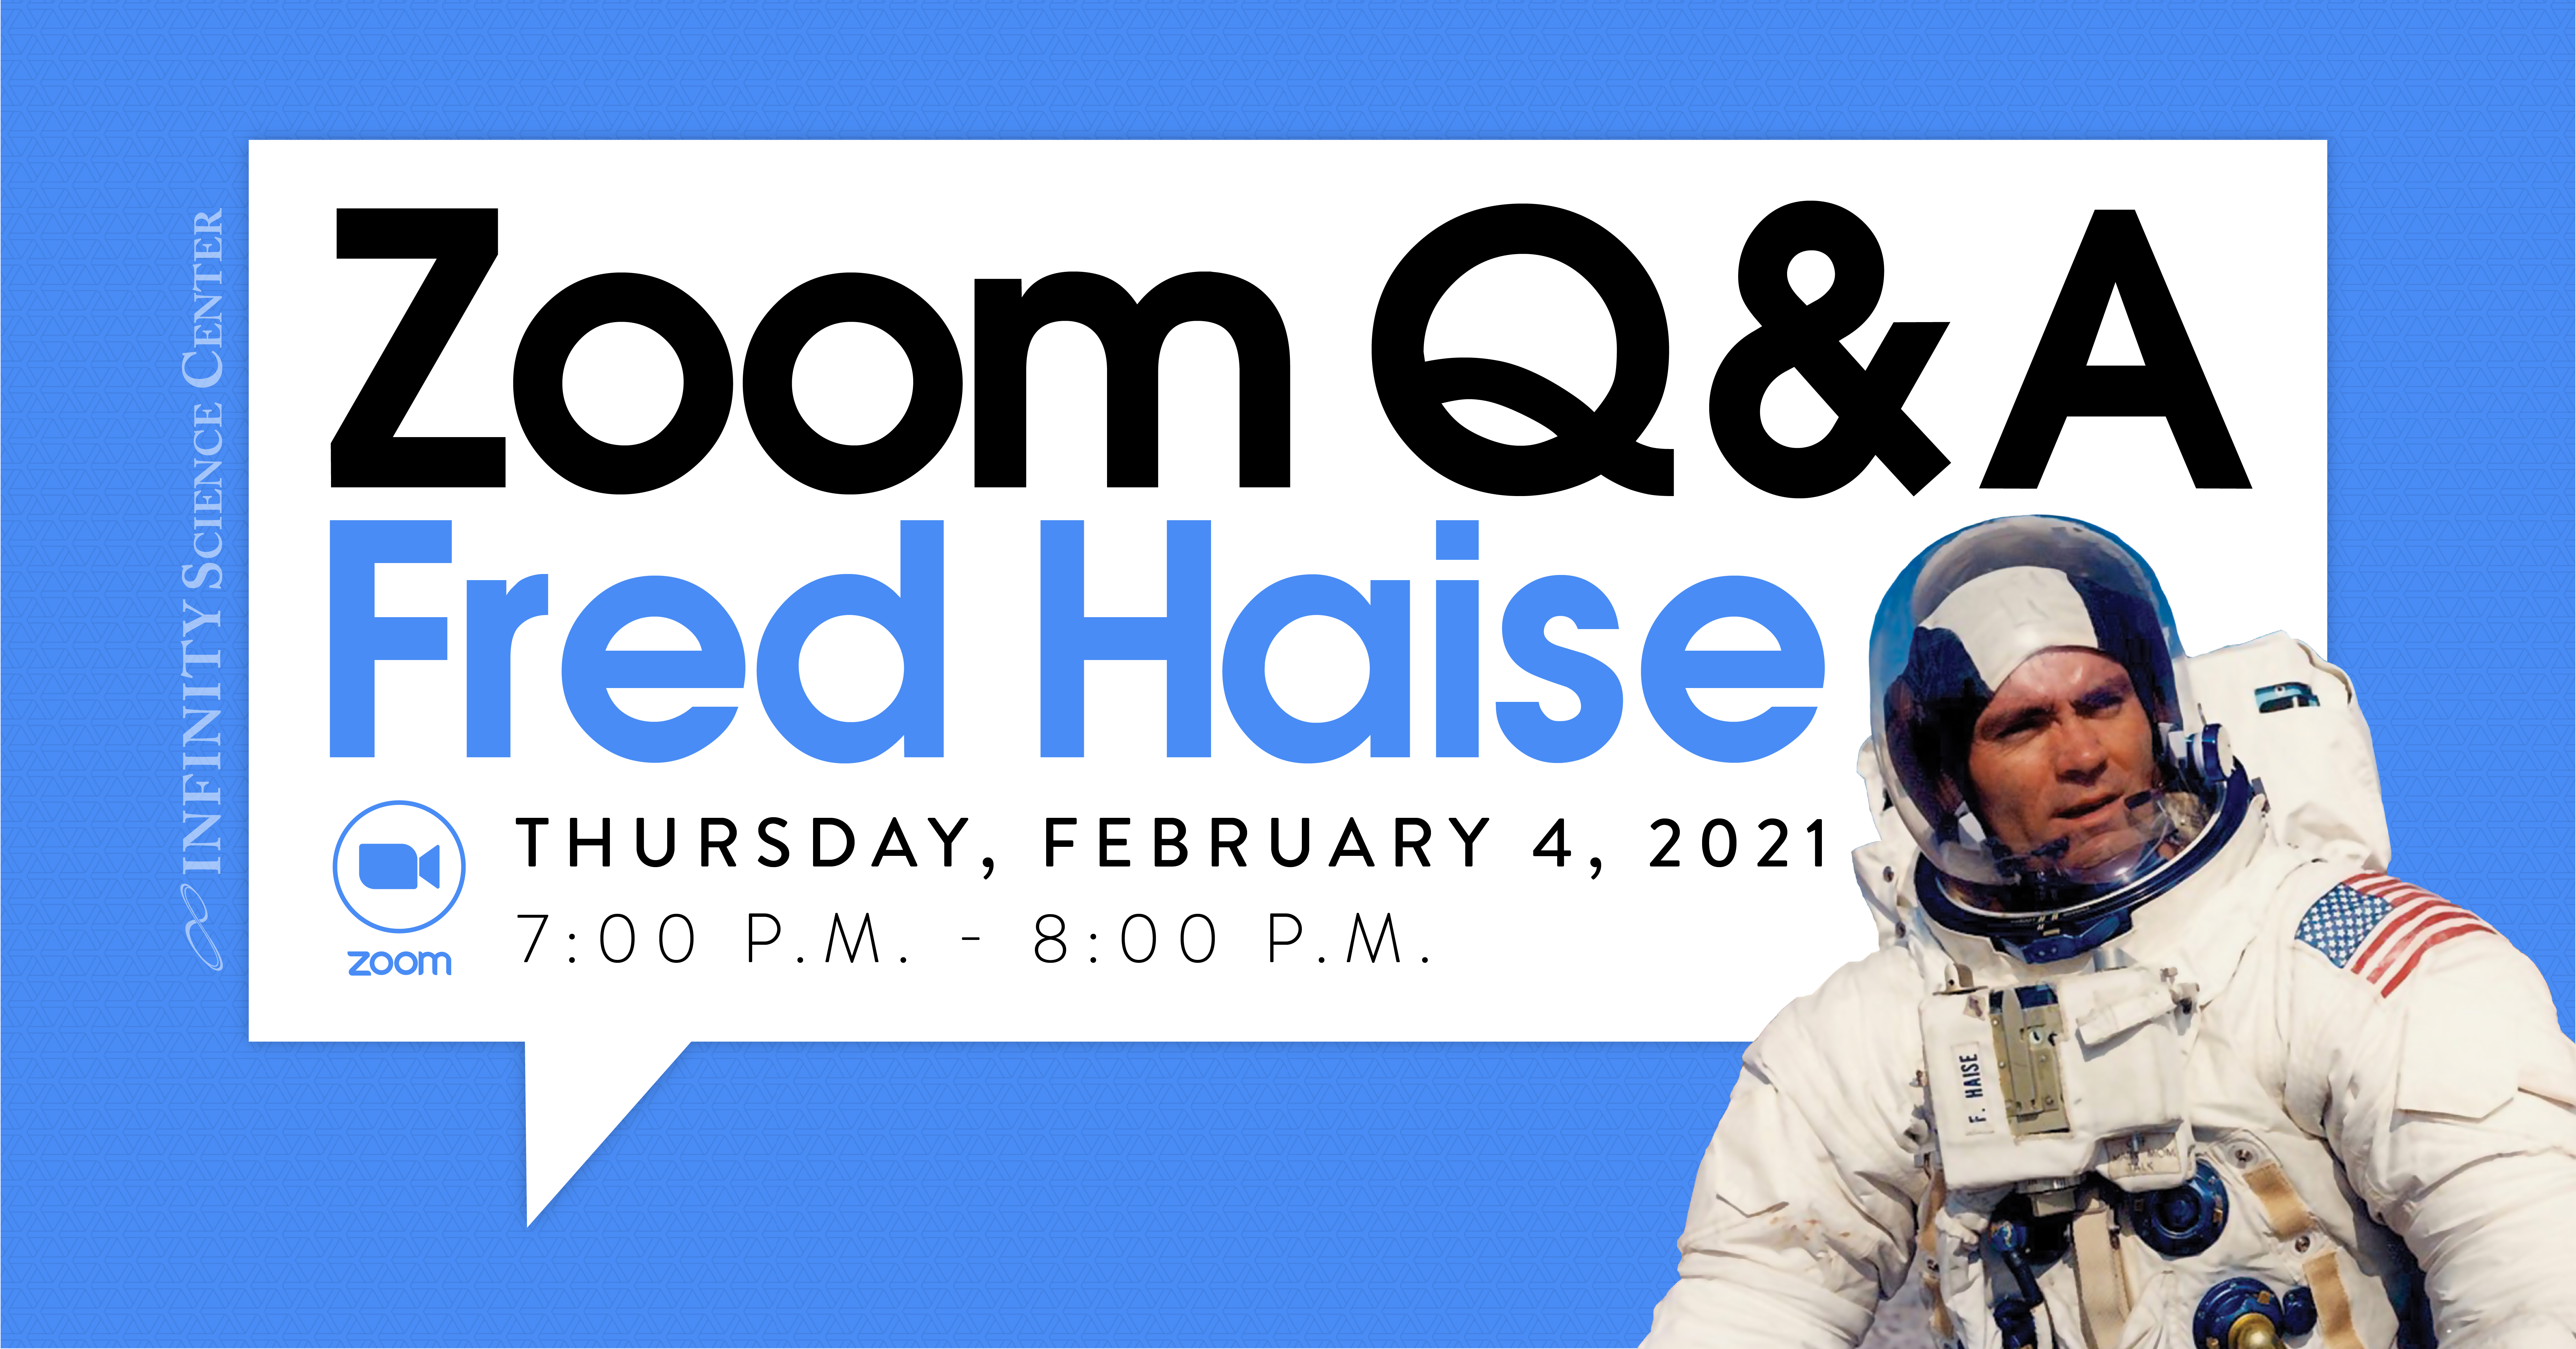 Zoom Q&A with Mr. Fred Haise